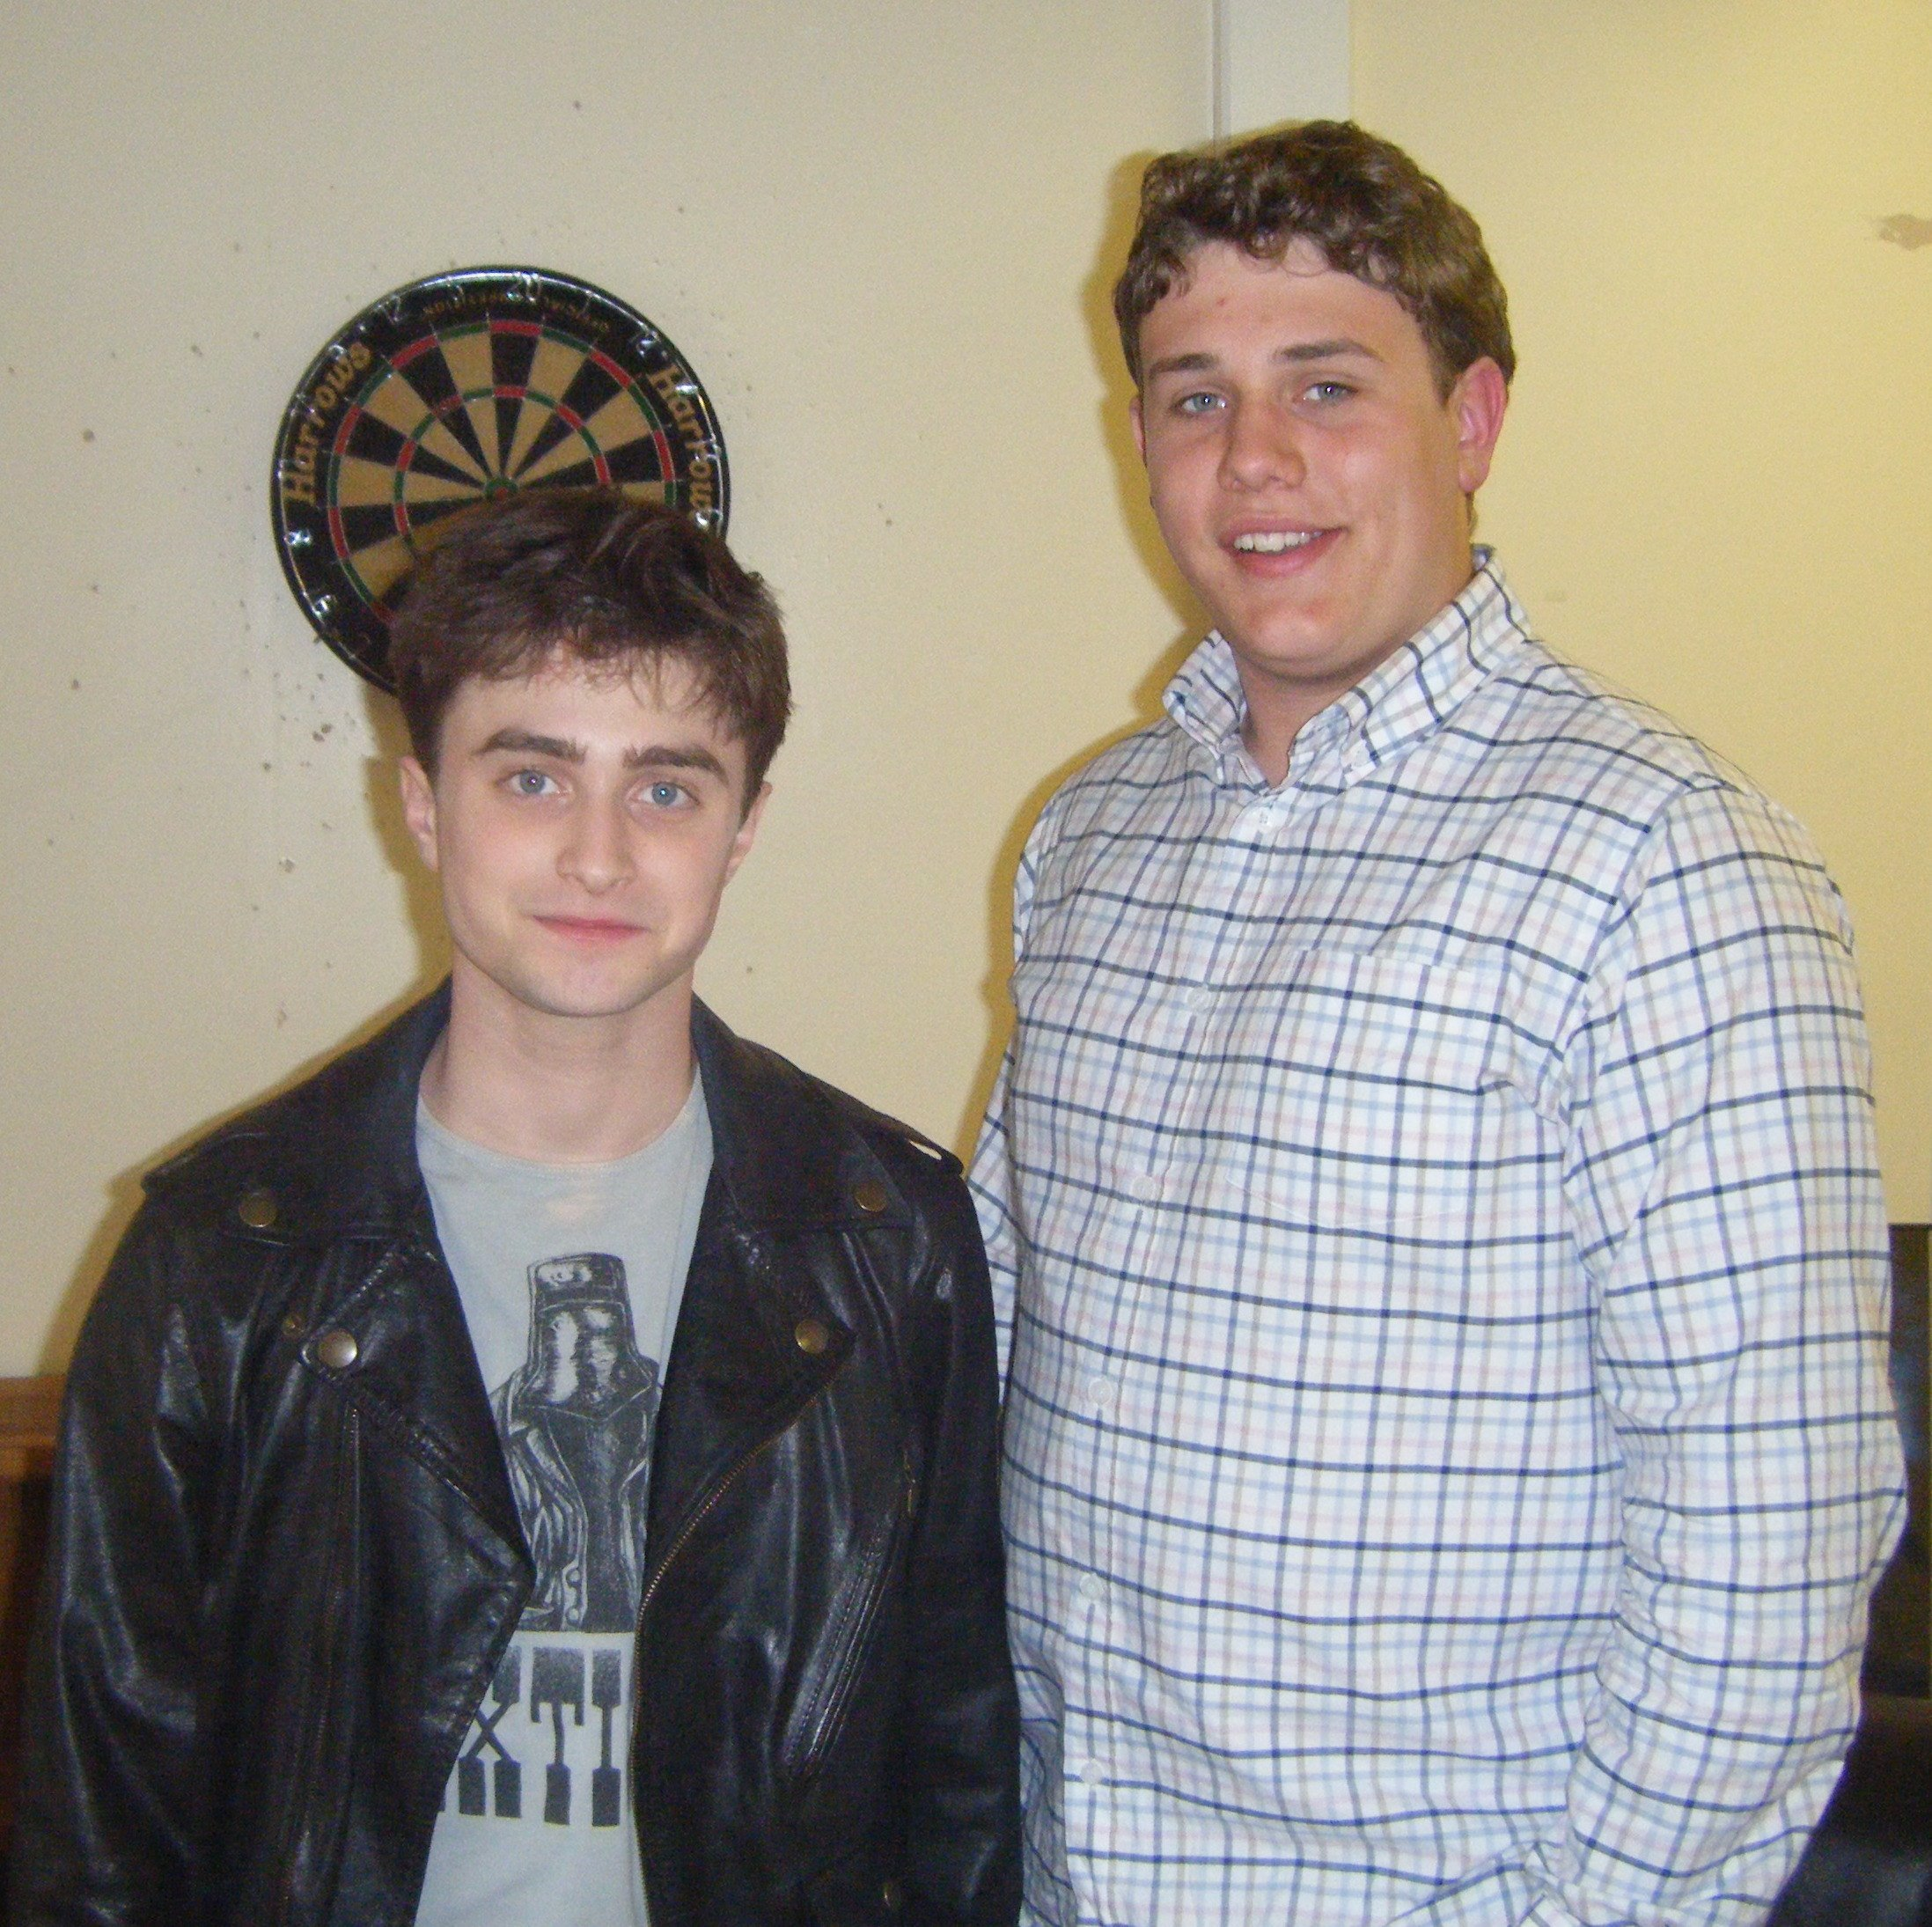 Robert Knox with Harry Potter star Daniel Radcliffe